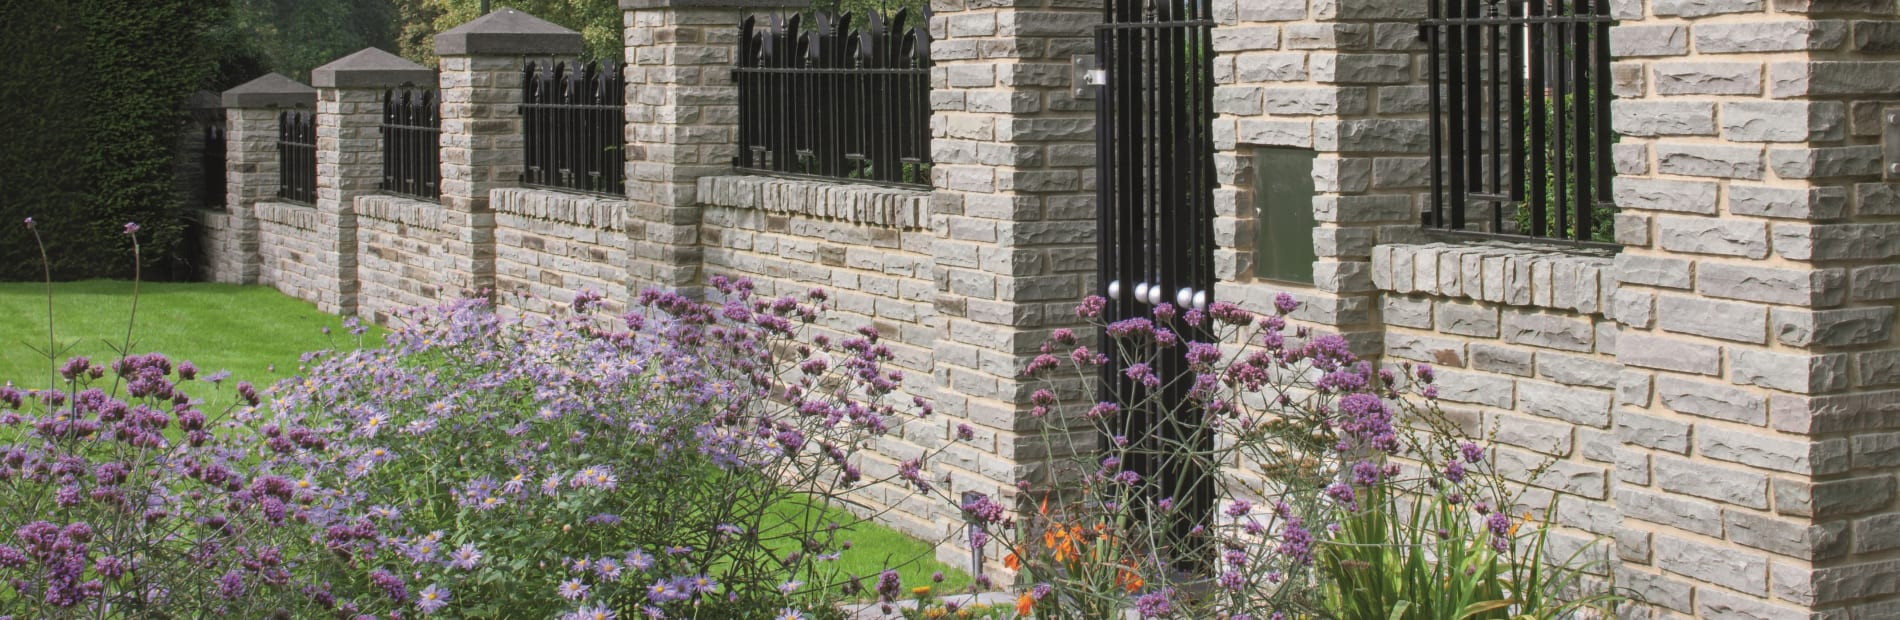 Fairstone Traditional Pitch Faced Walling   hero image